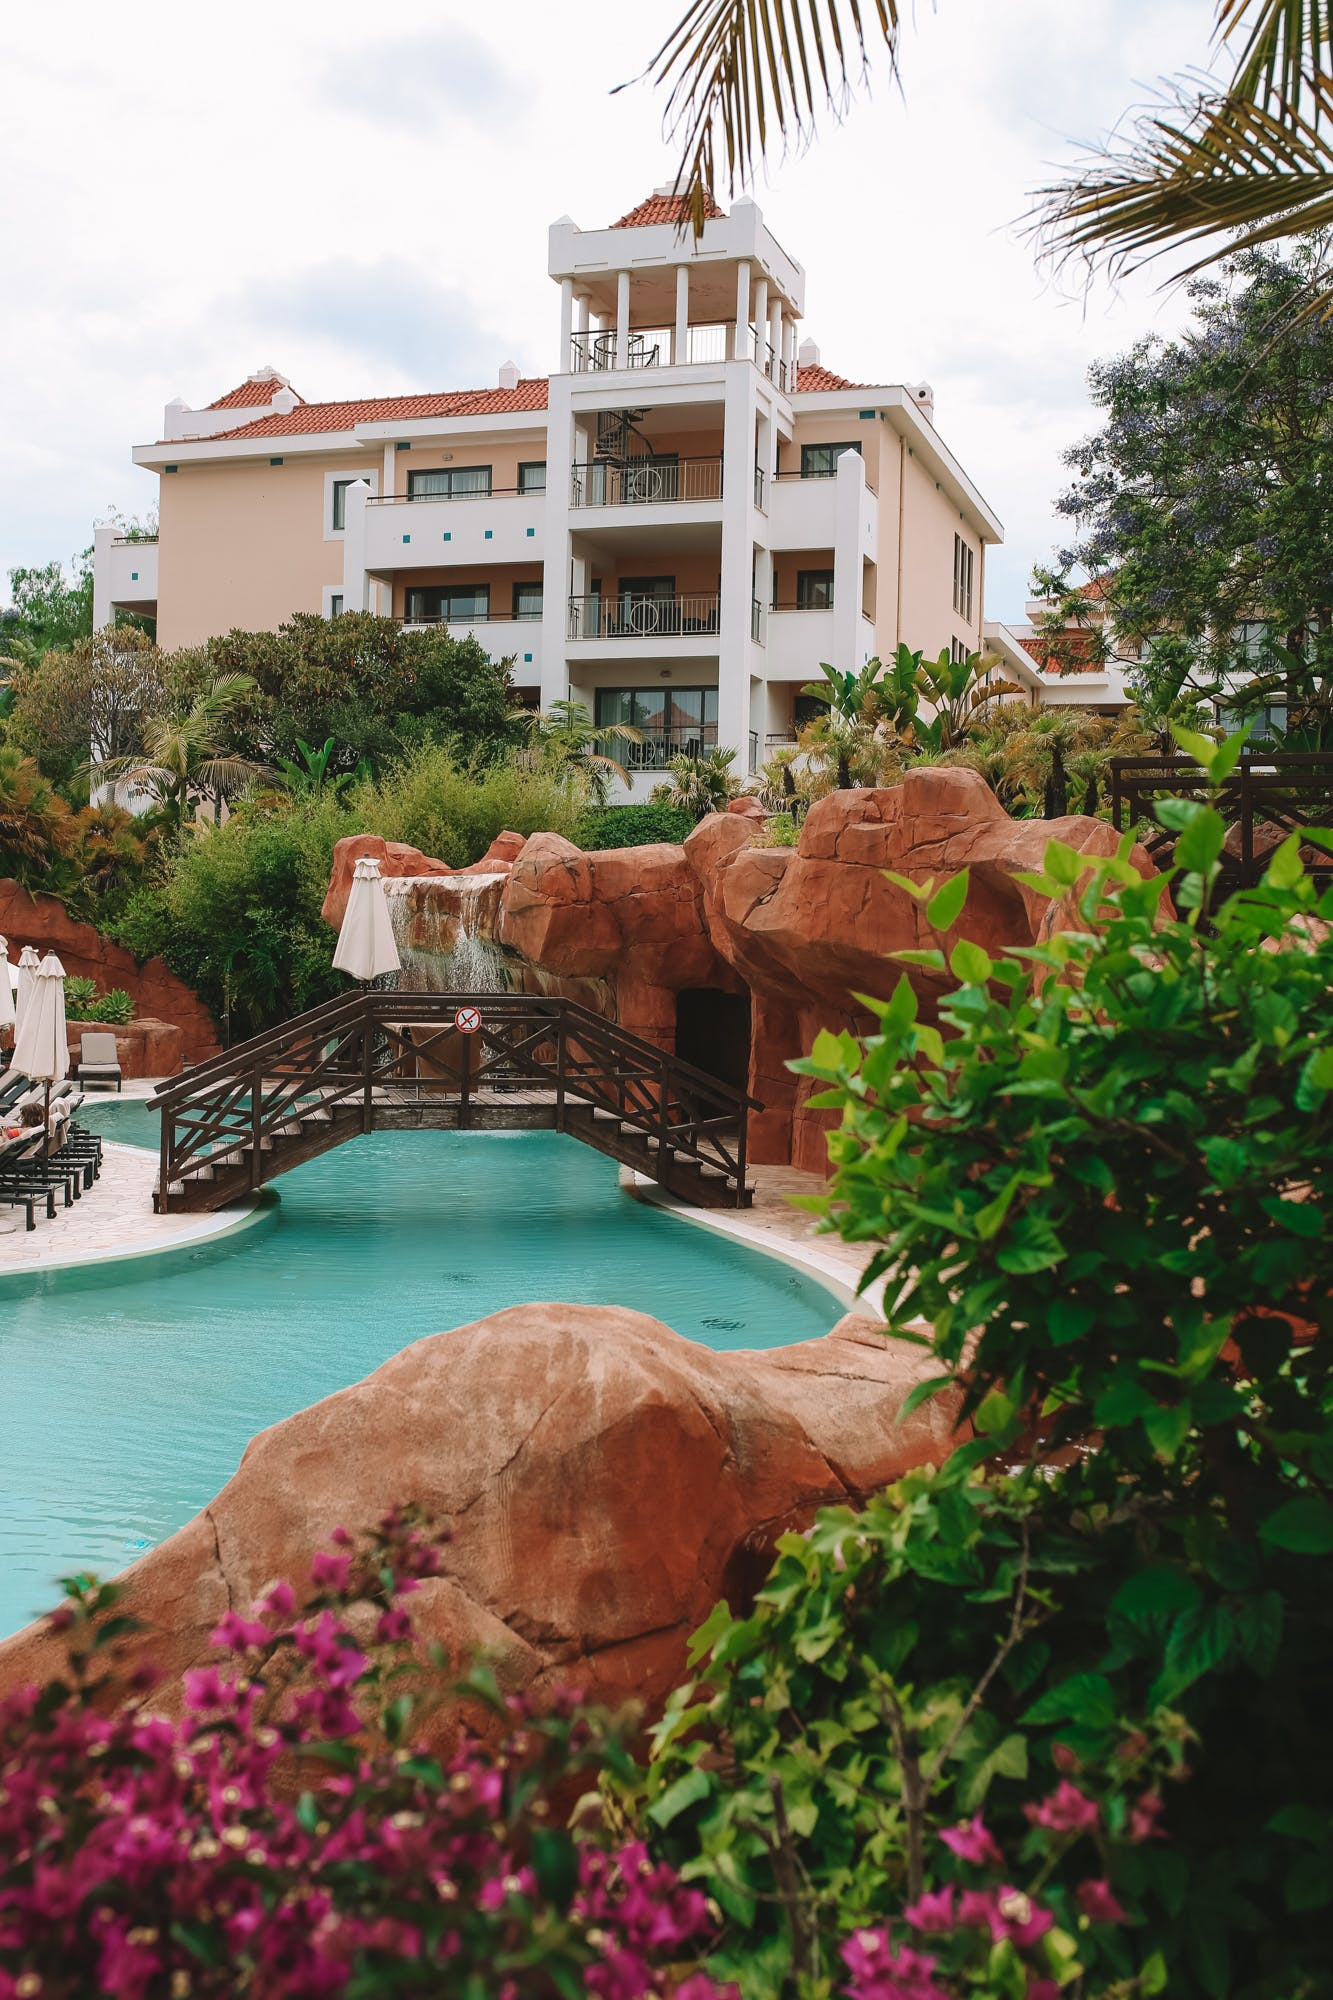 Beautiful gardens and landscape at the luxury hotel, Hilton Vilamoura As Cascatas Golf Resort & Spa